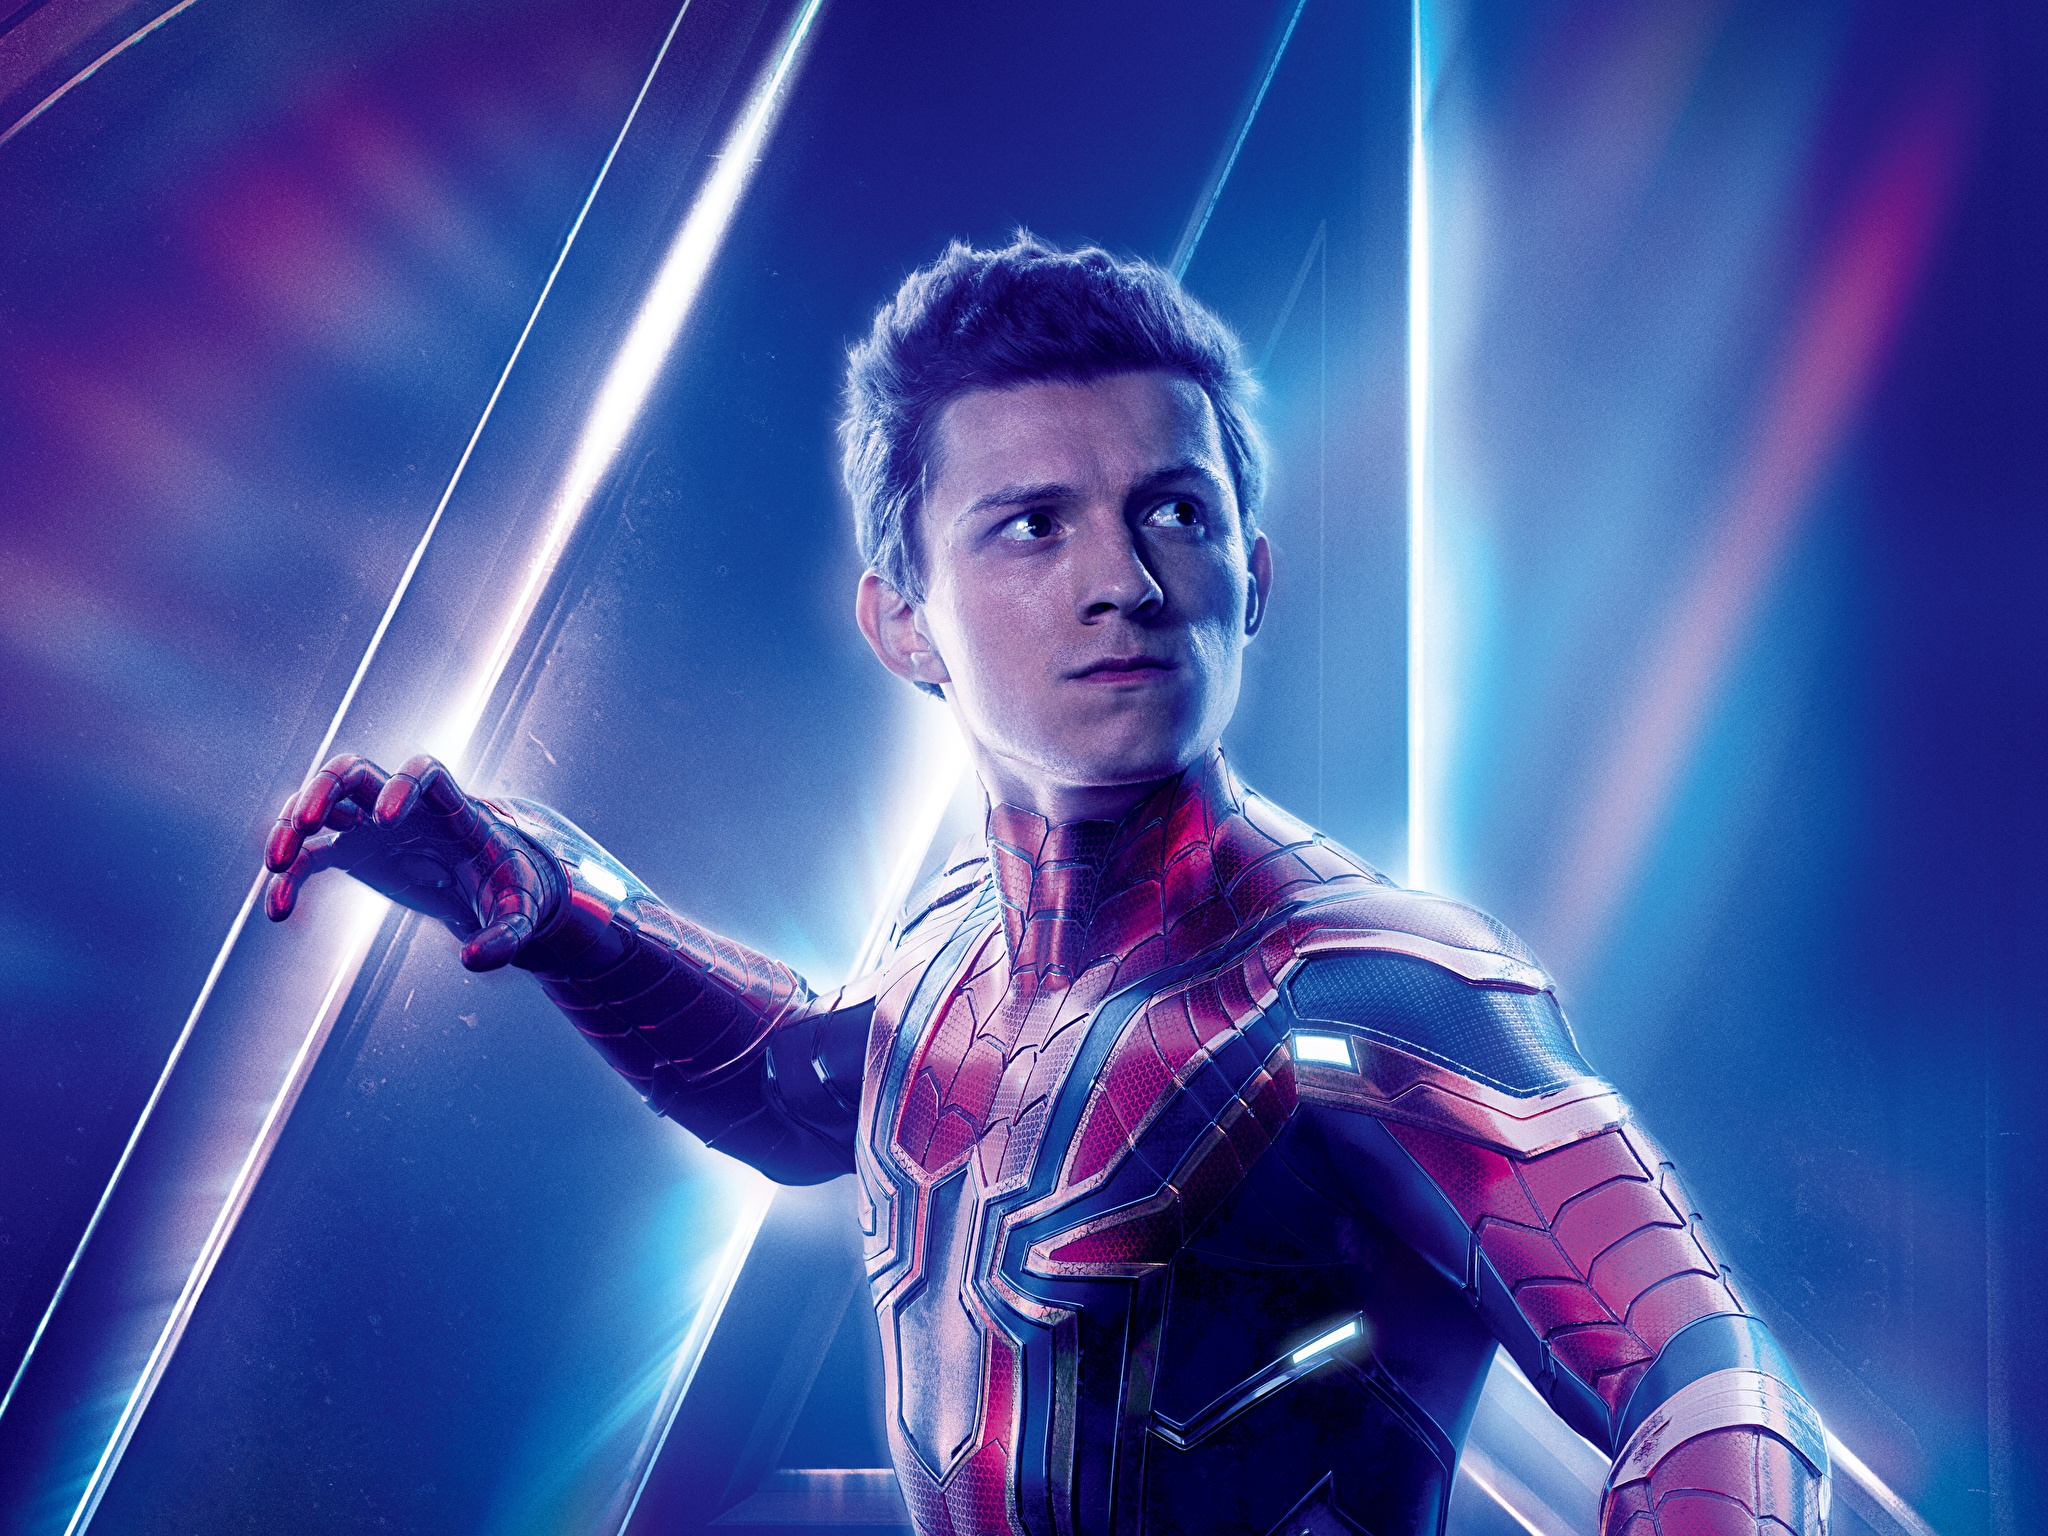 Avengers_Infinity_War_Spiderman_hero_Tom_Holland_550028_2048x1536.jpg